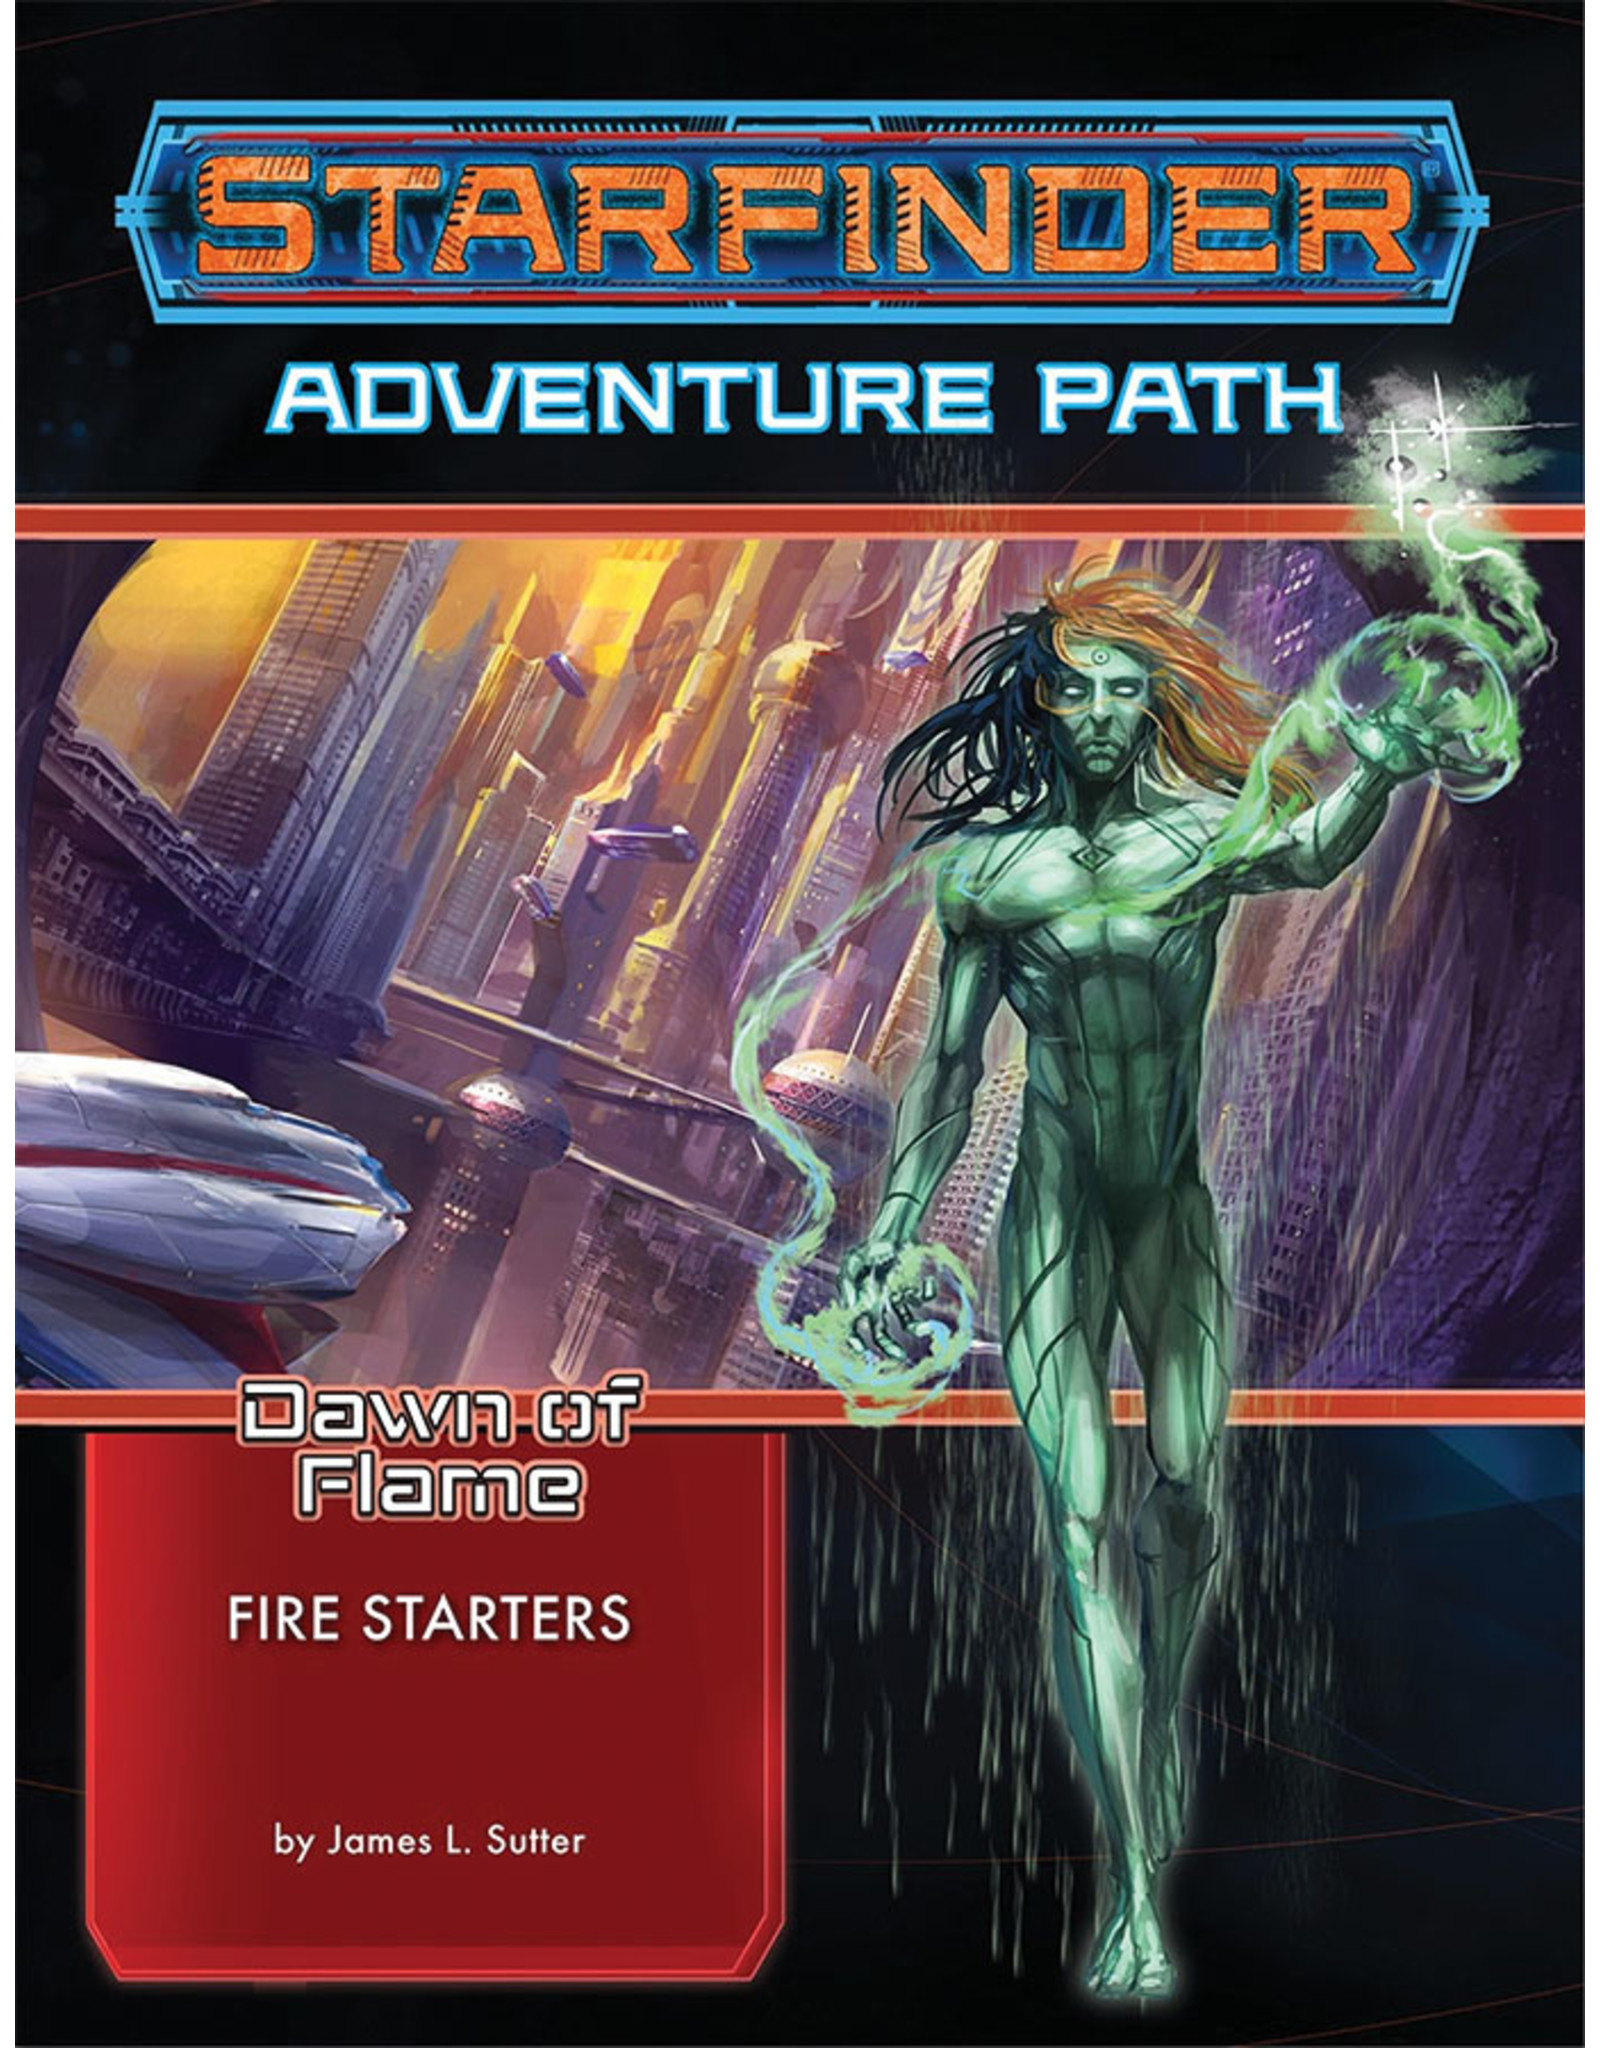 Paizo Publishing Starfinder Adventure Path: Fire Starters (Dawn of Flame 1 of 6)